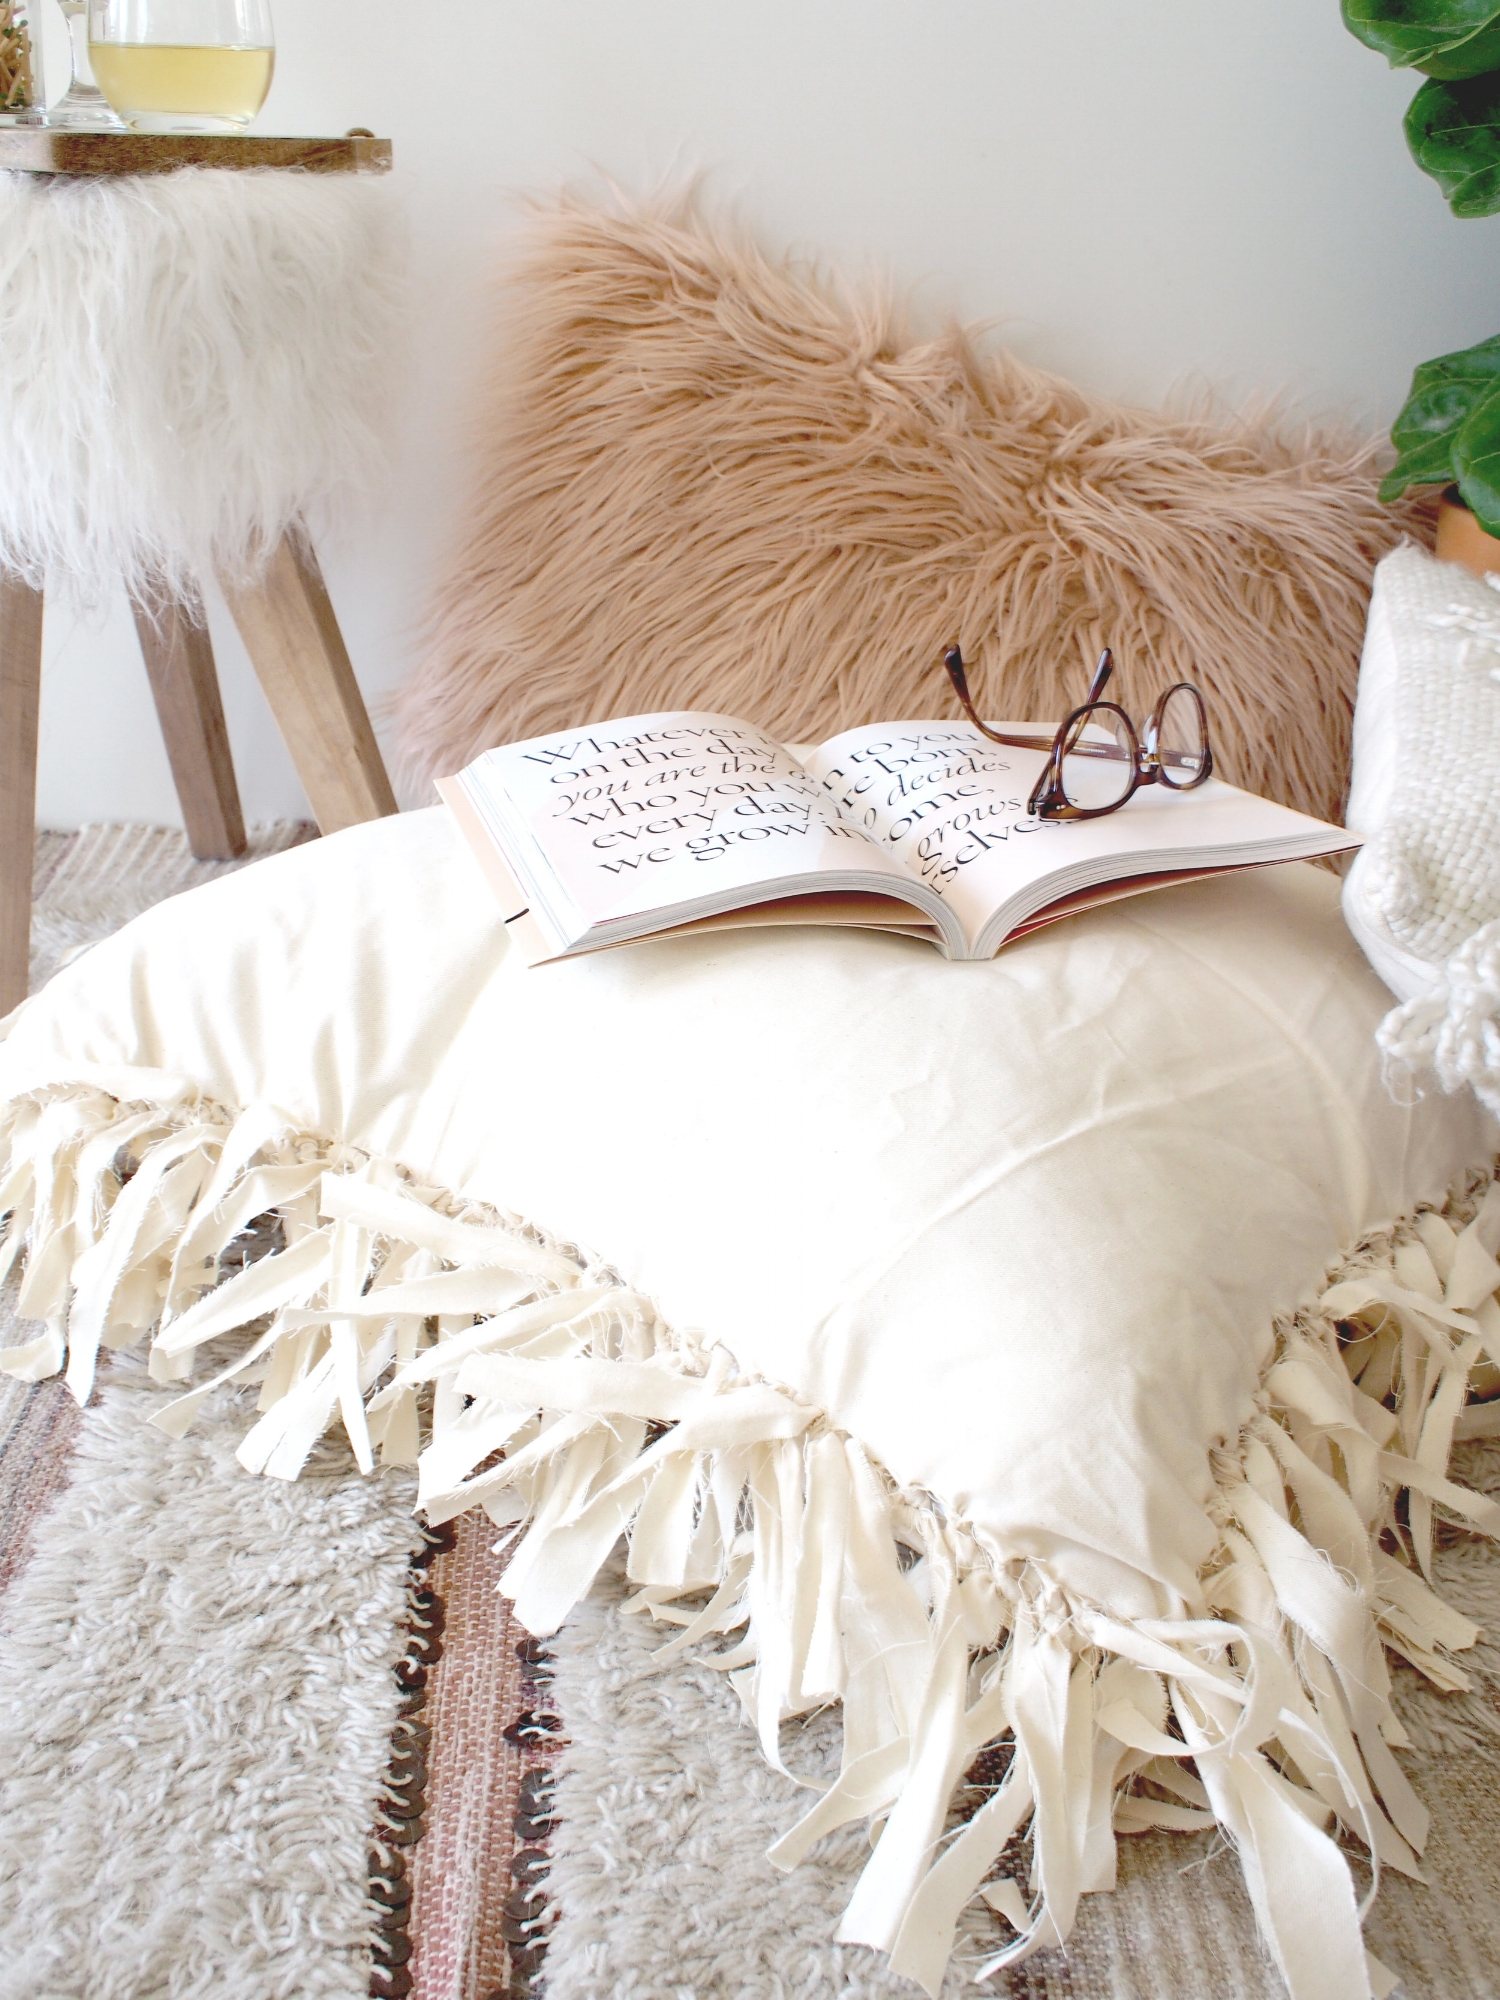 How to make floor pillows for your home | A Fabulous Fete